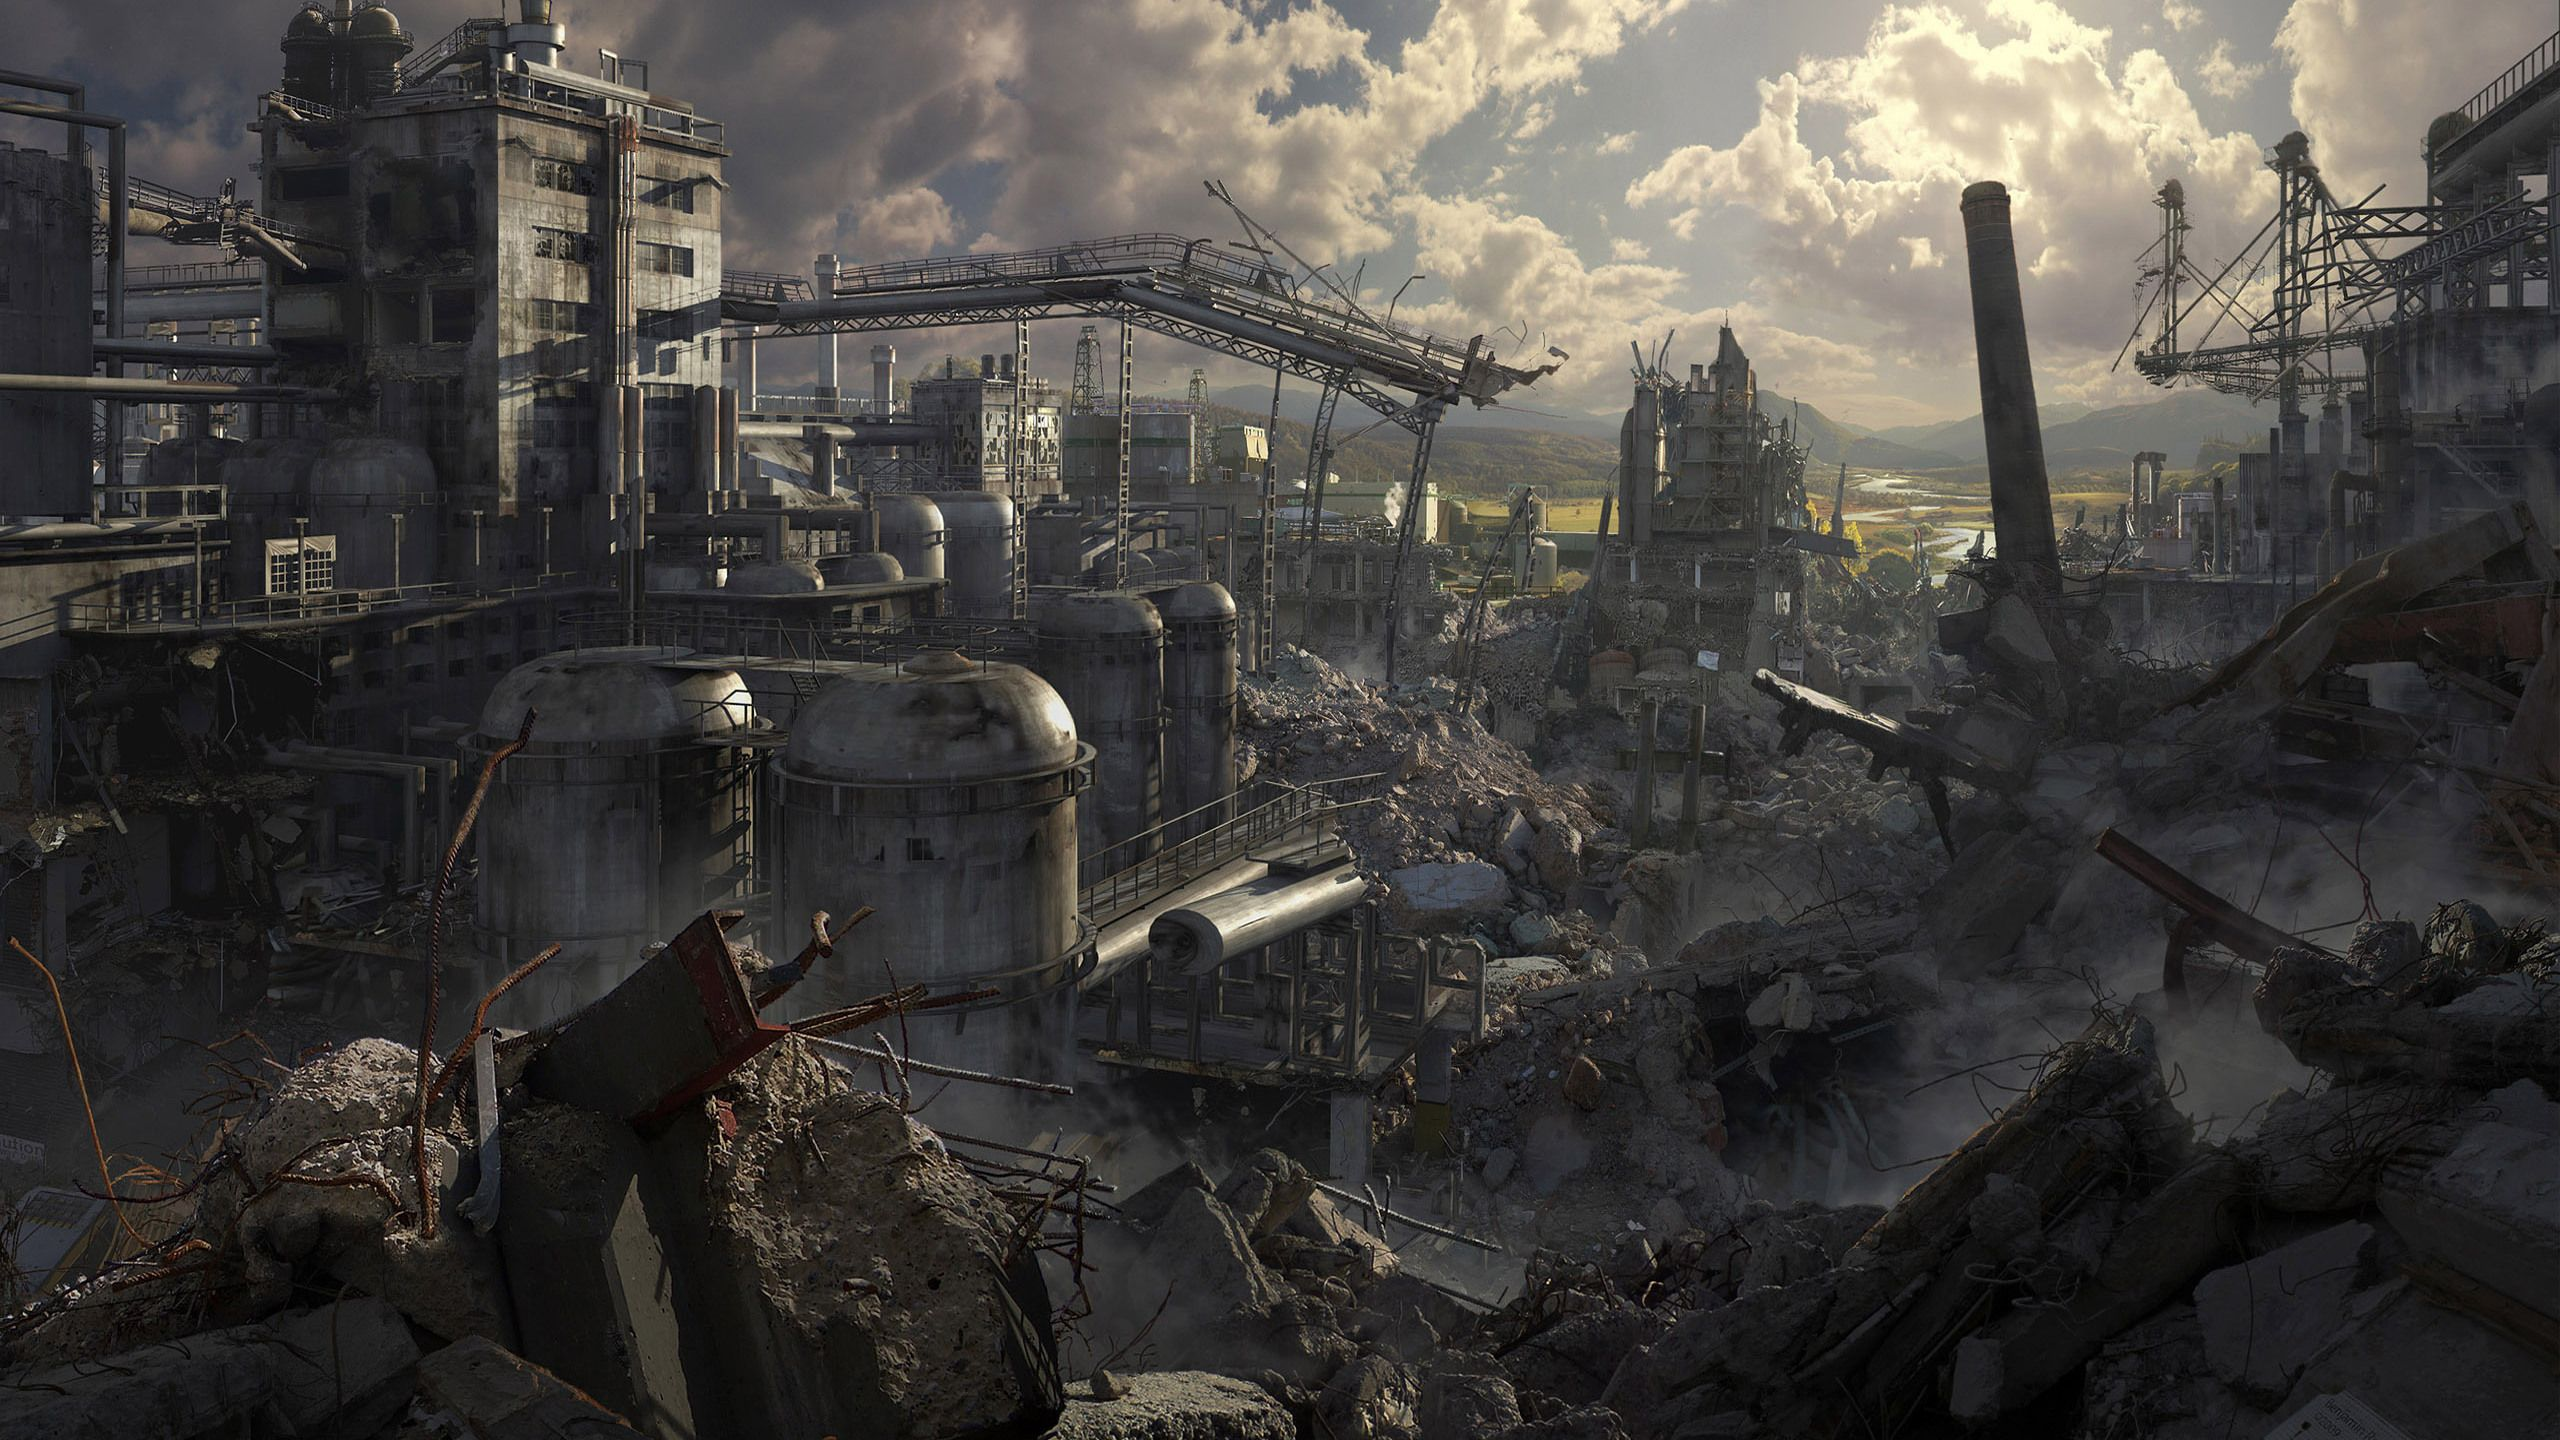 2560x1440 - Post Apocalyptic Wallpapers 25